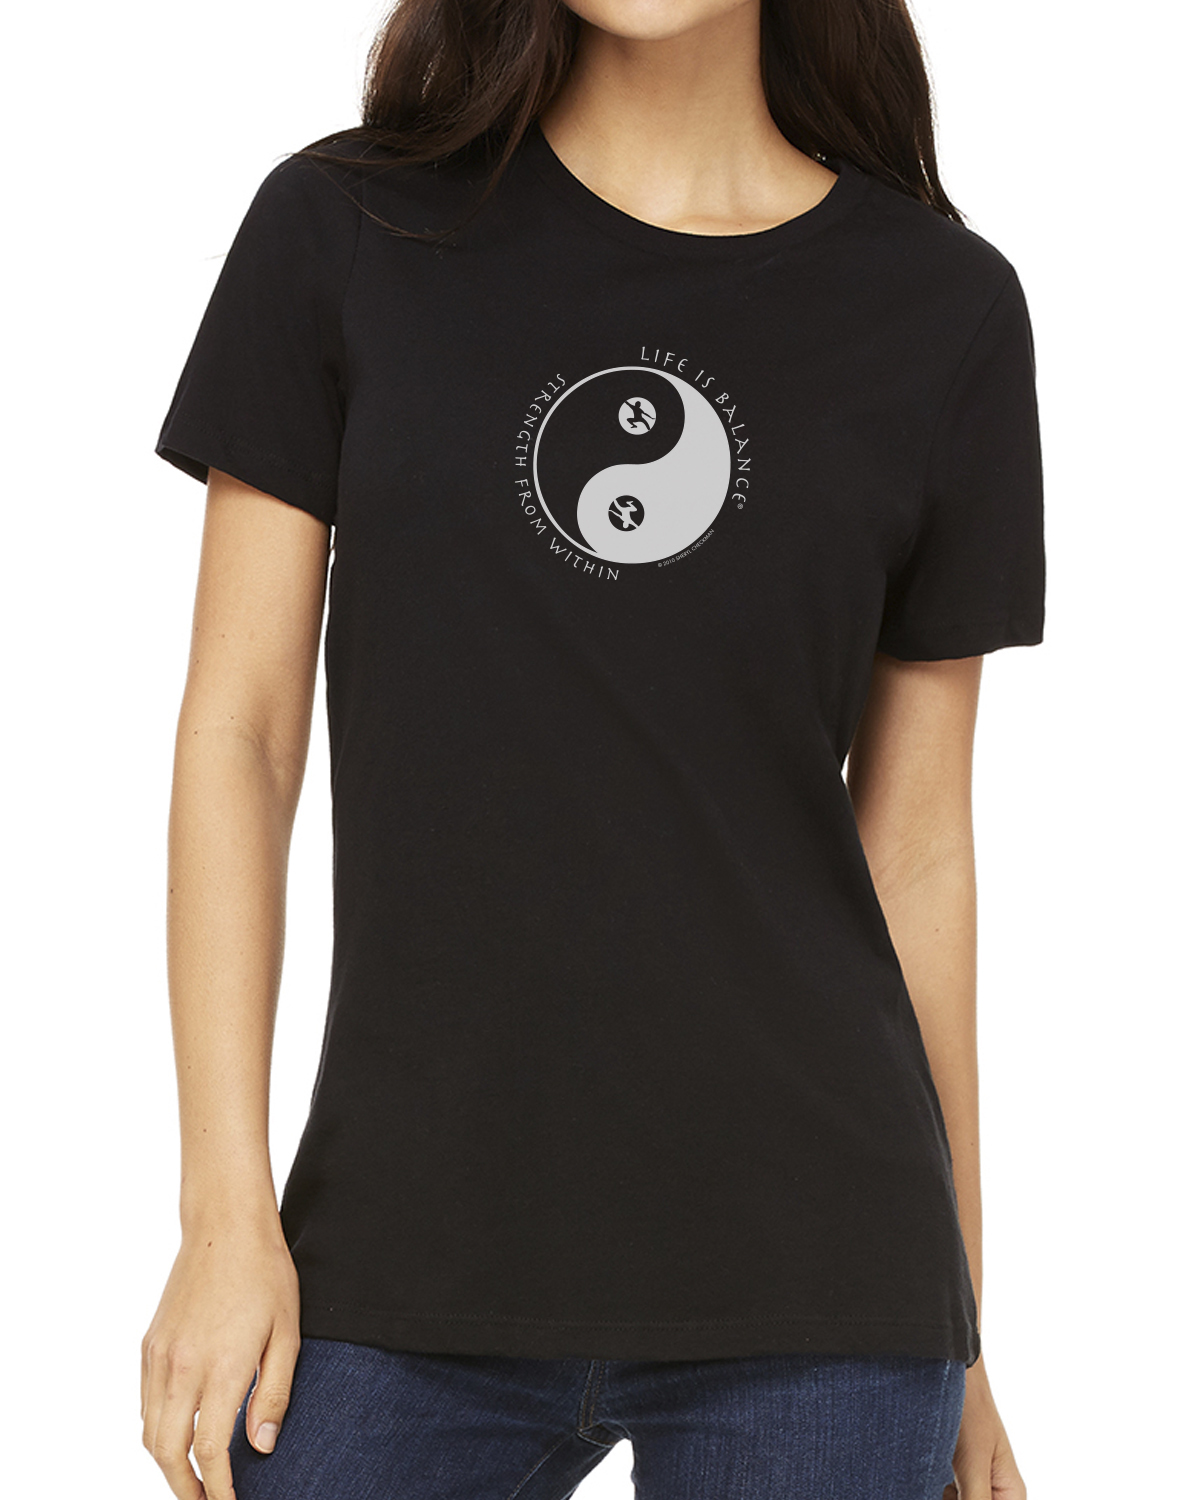 Women's short sleeve Tai Chi T-shirt (black)